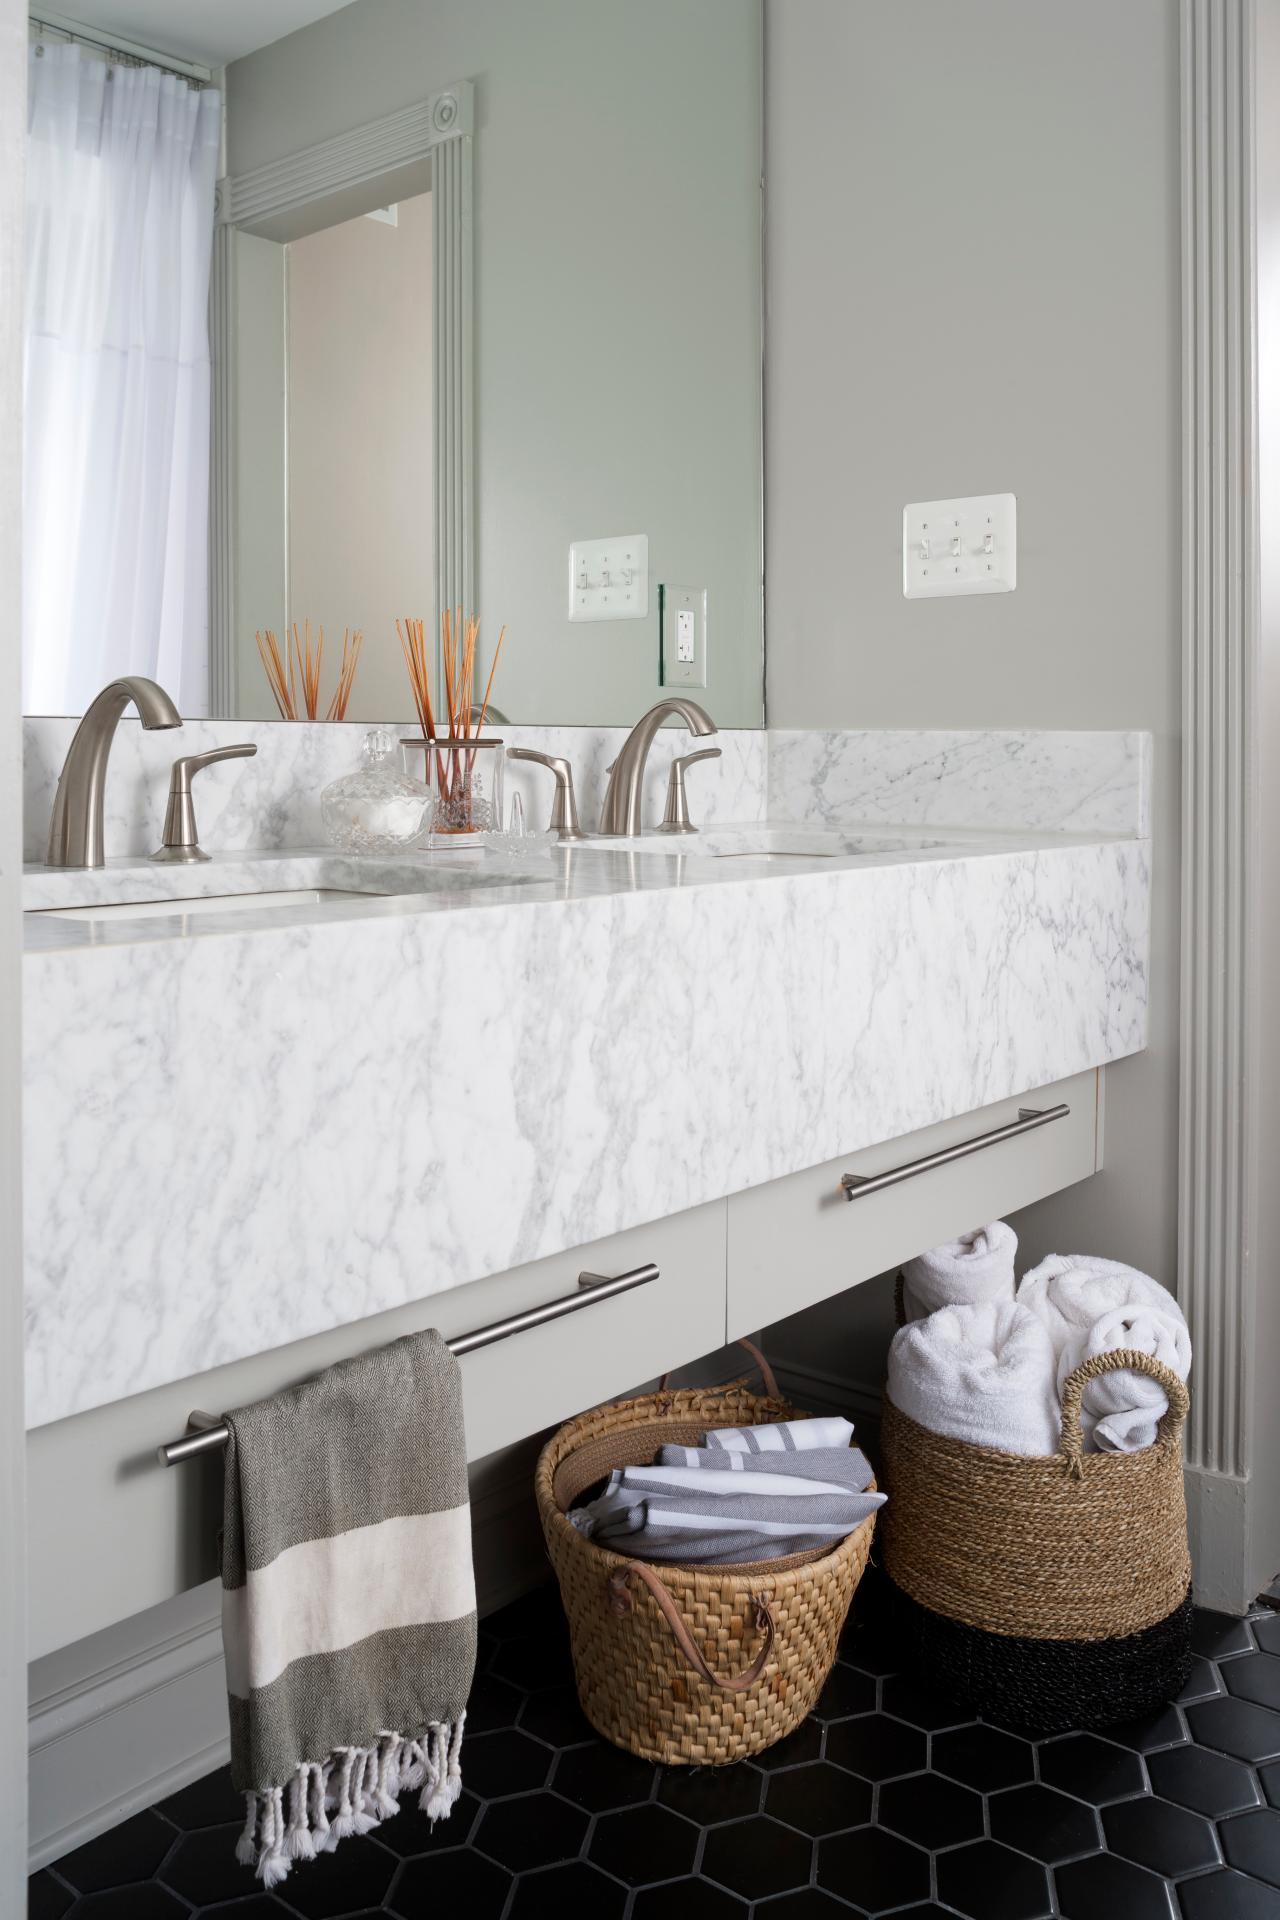 marble bathrooms we re swooning over hgtv s decorating design rh hgtv com black and white marble floor bathrooms black and white marble floor bathrooms